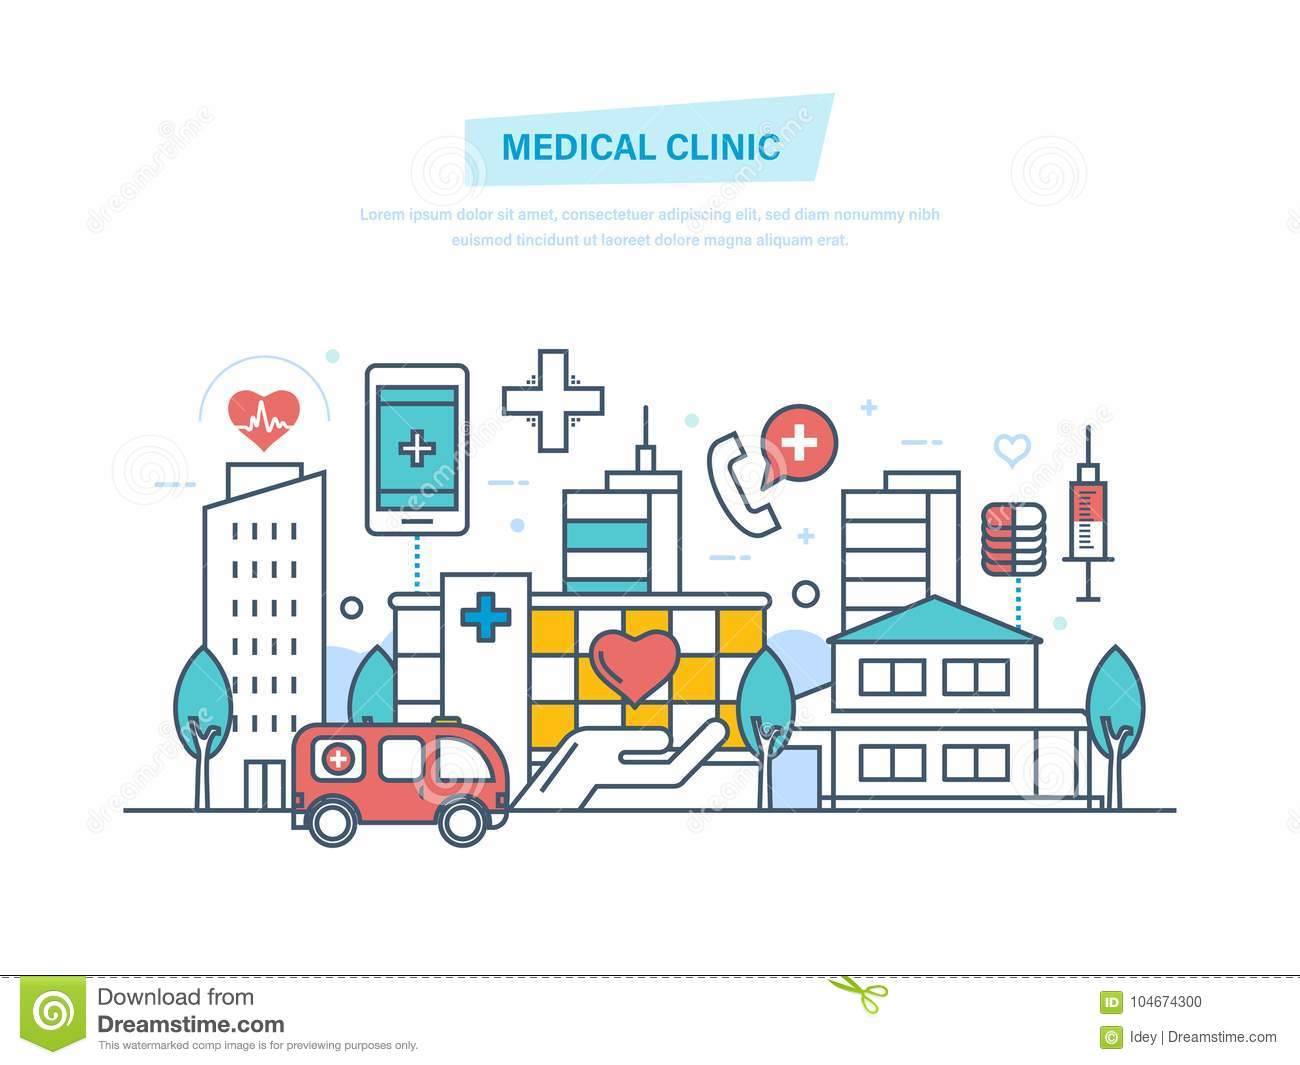 Ambulance Exterior Diagram Schematic Diagrams Wiring Medical Clinic City Hospital Building Healthcare System And 1990 F150